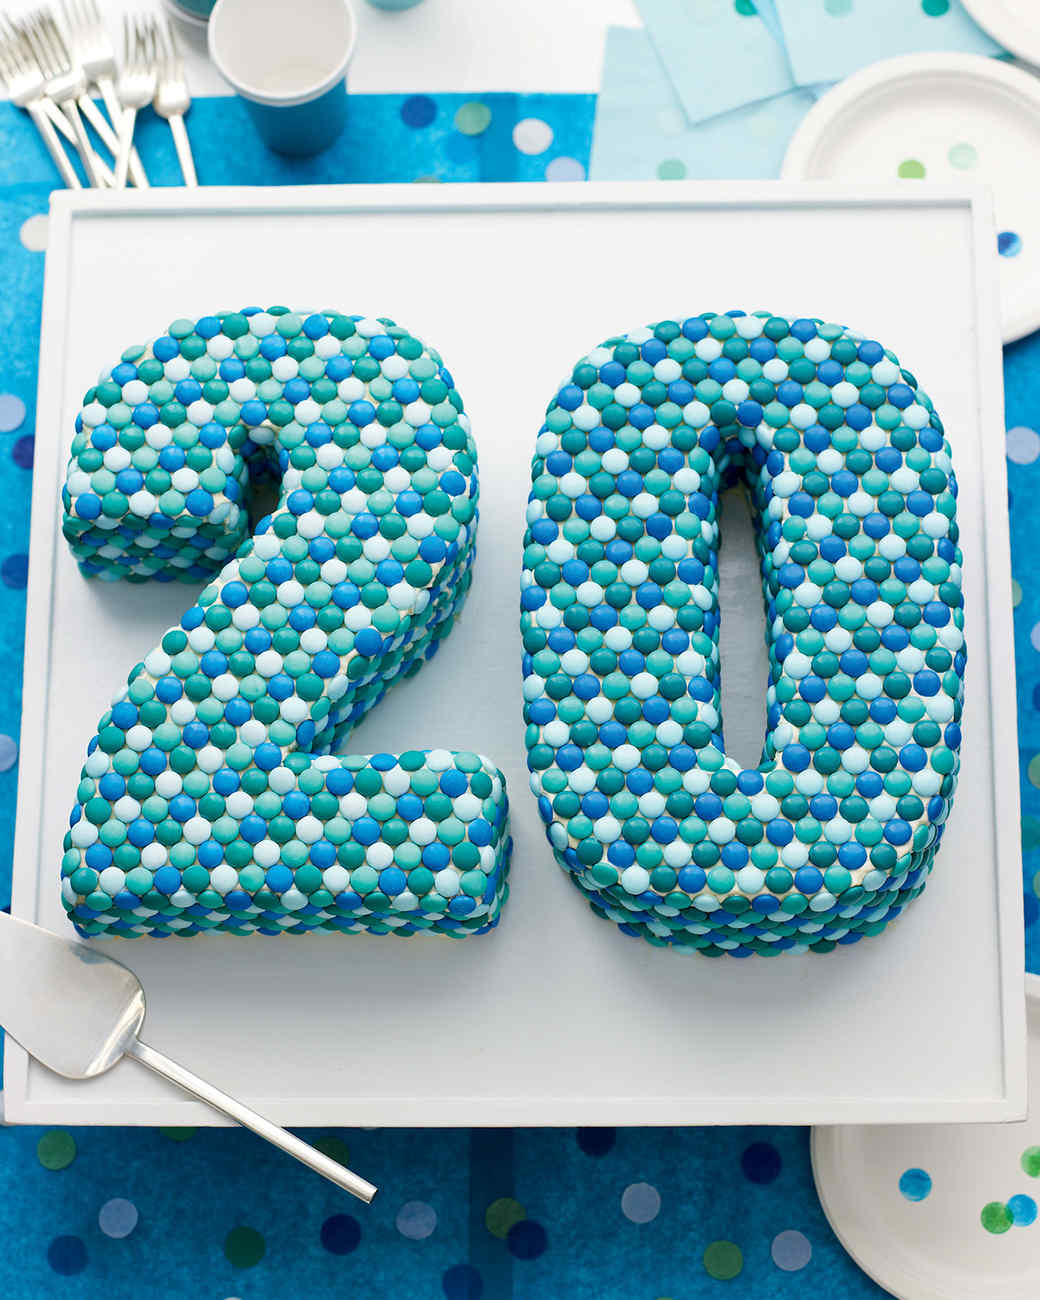 A NumberThemed Birthday Party or Anniversary Martha Stewart